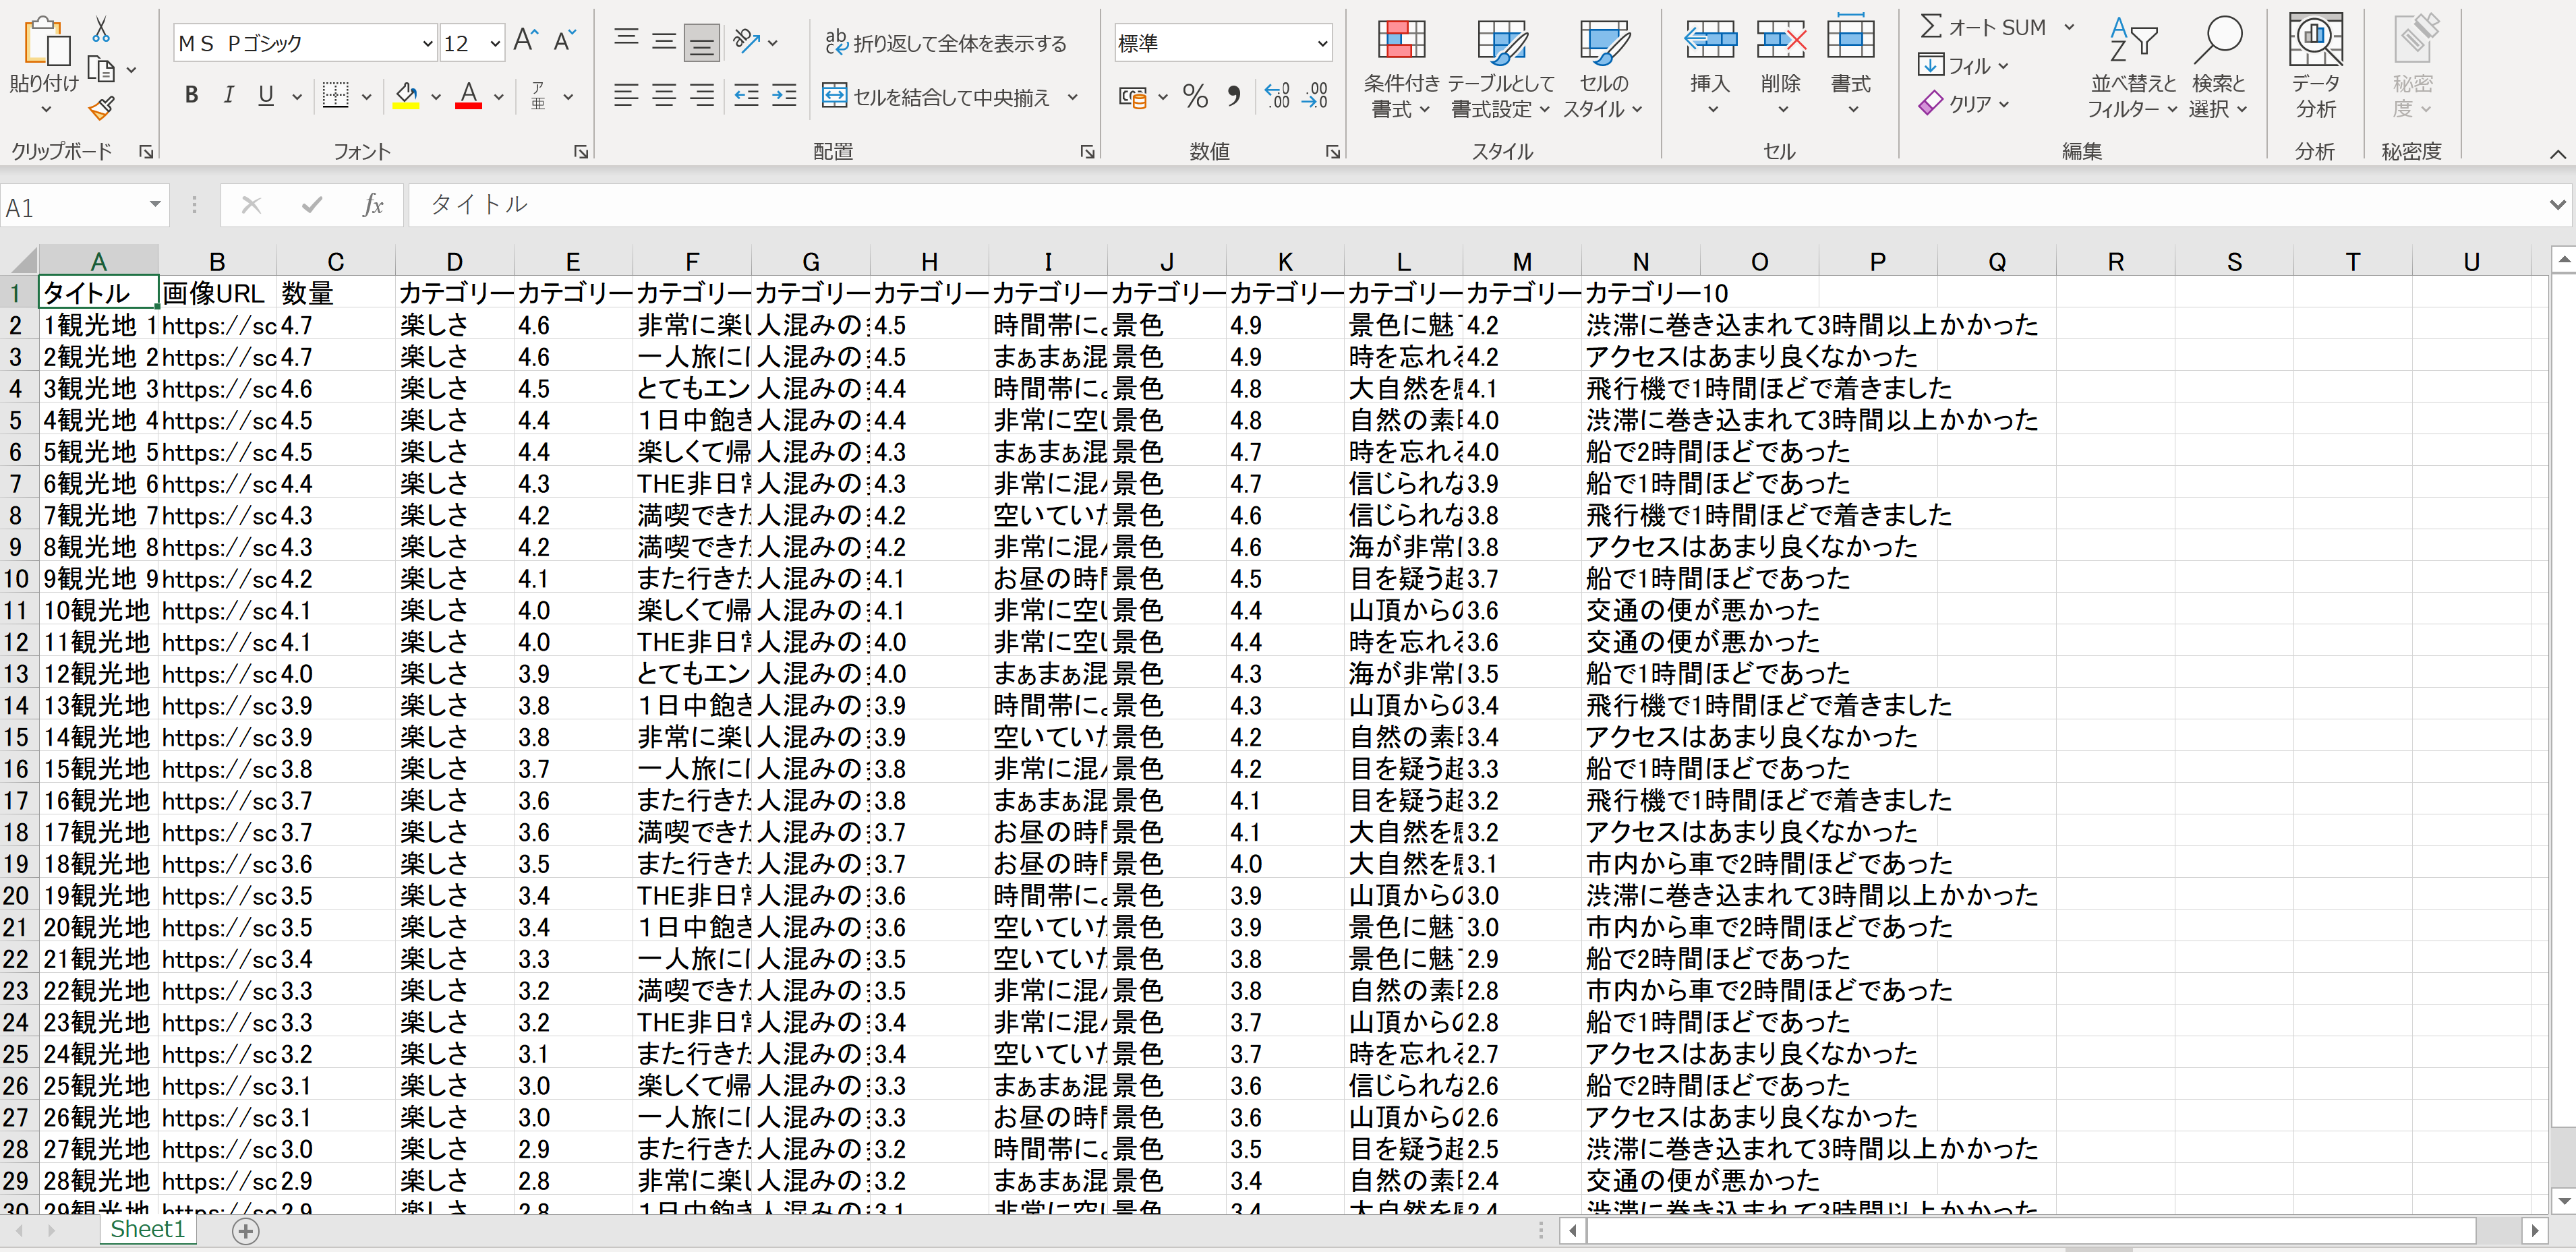 Octoparse EXCEL